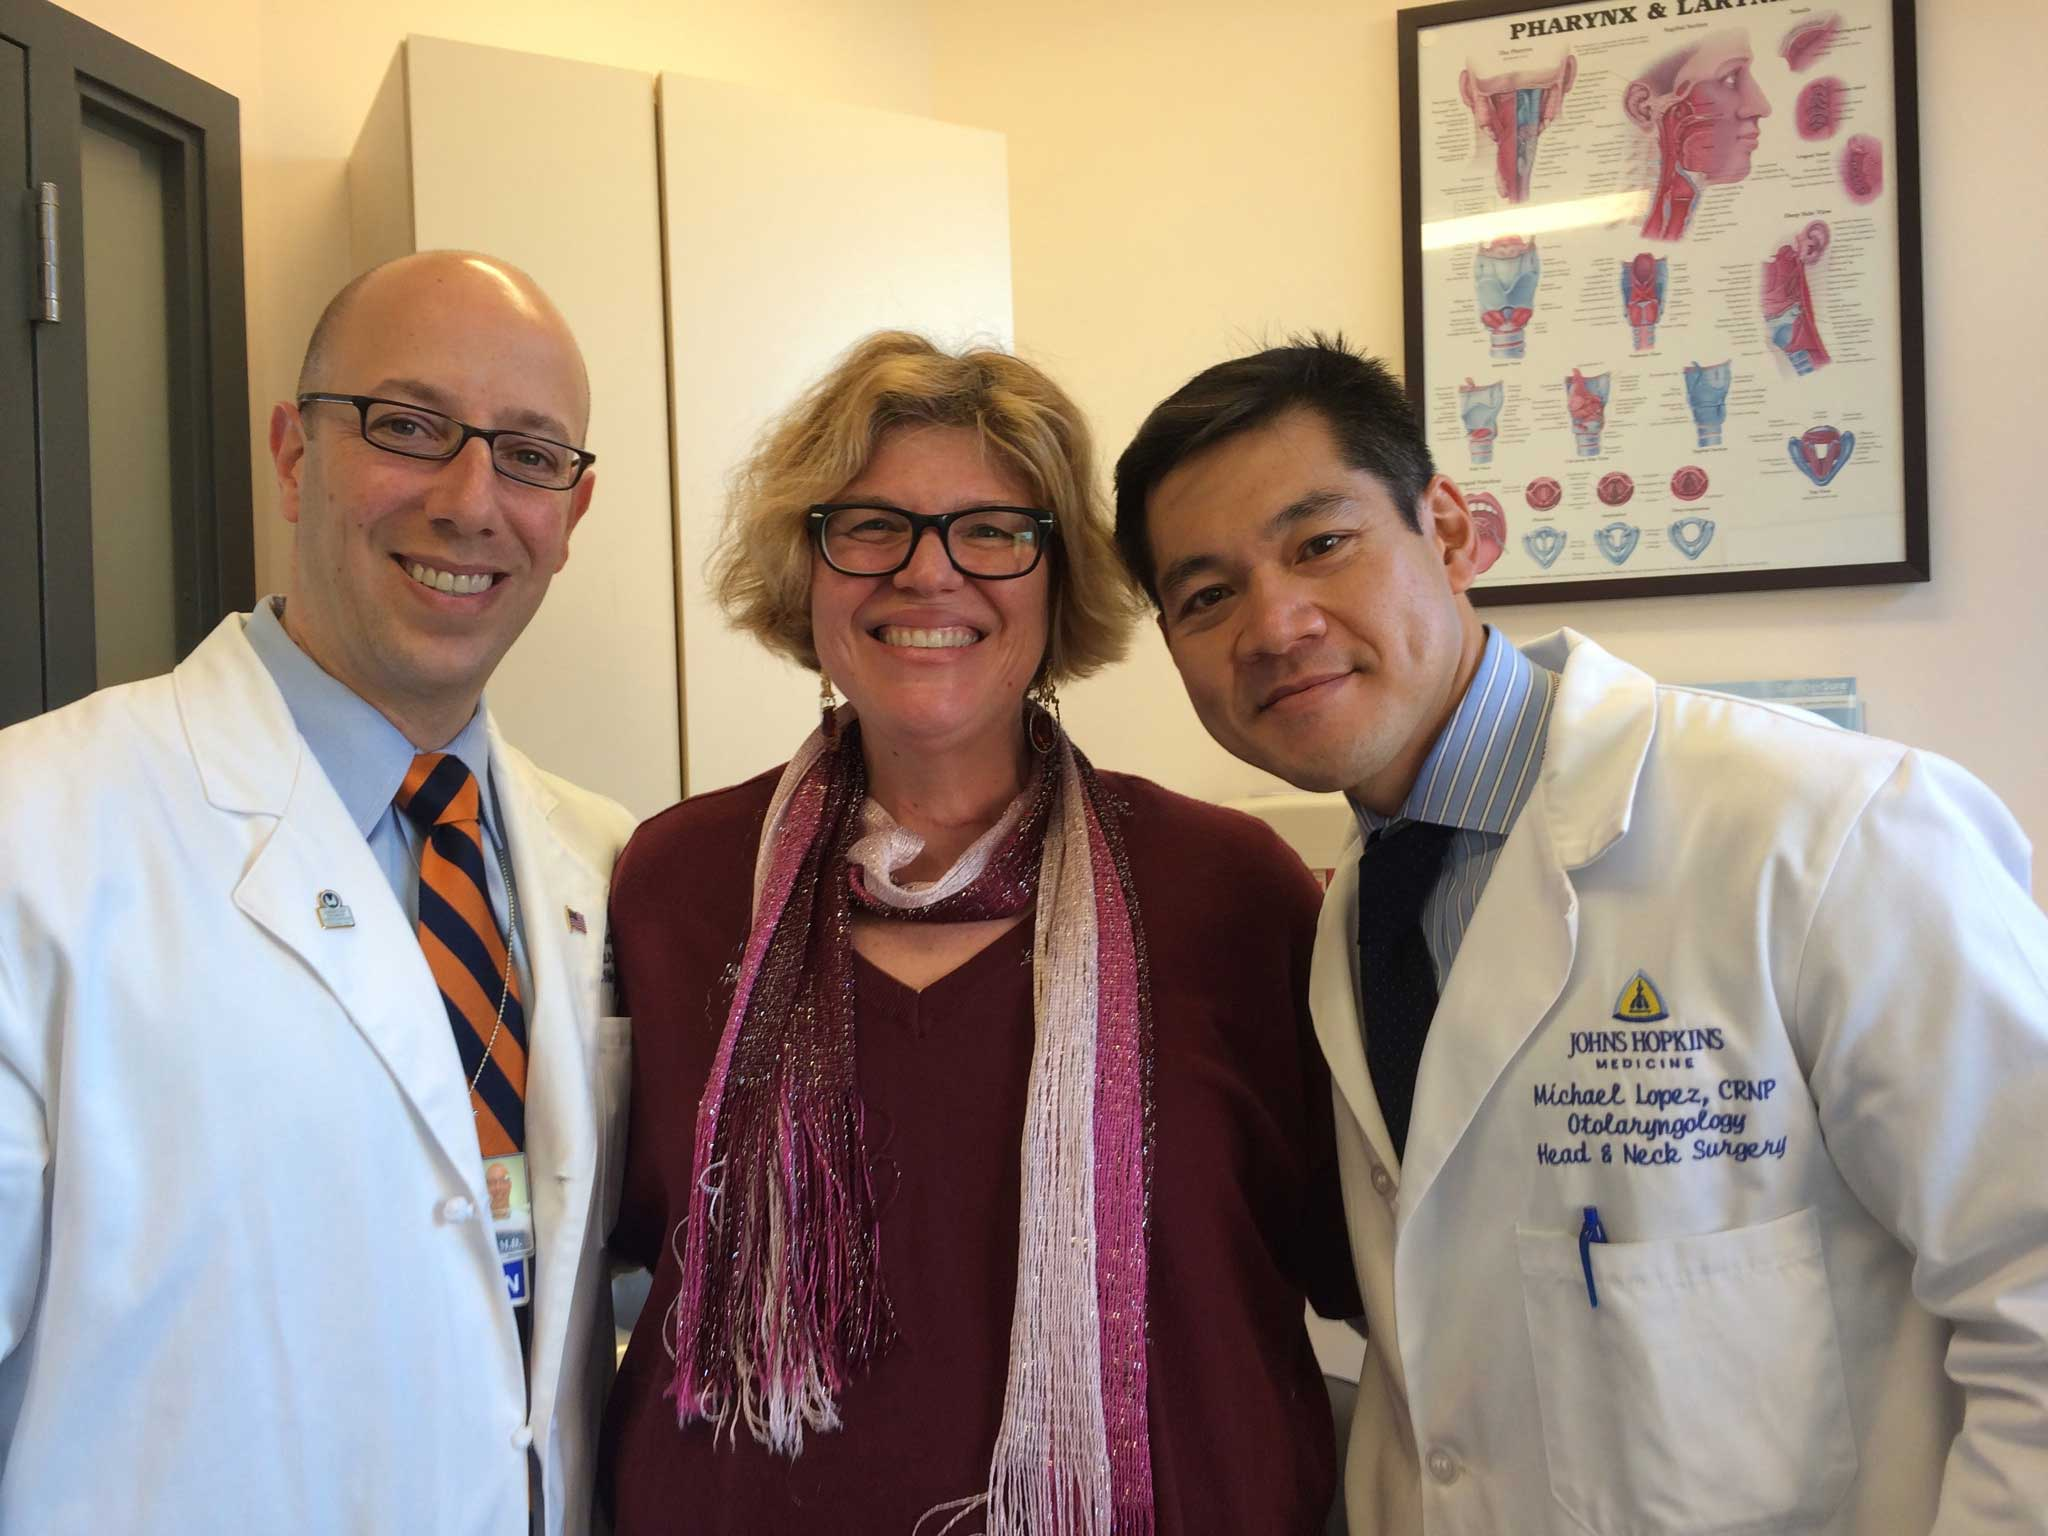 Roberta with Dr. Tufano and nurse practitioner Michael Lopez